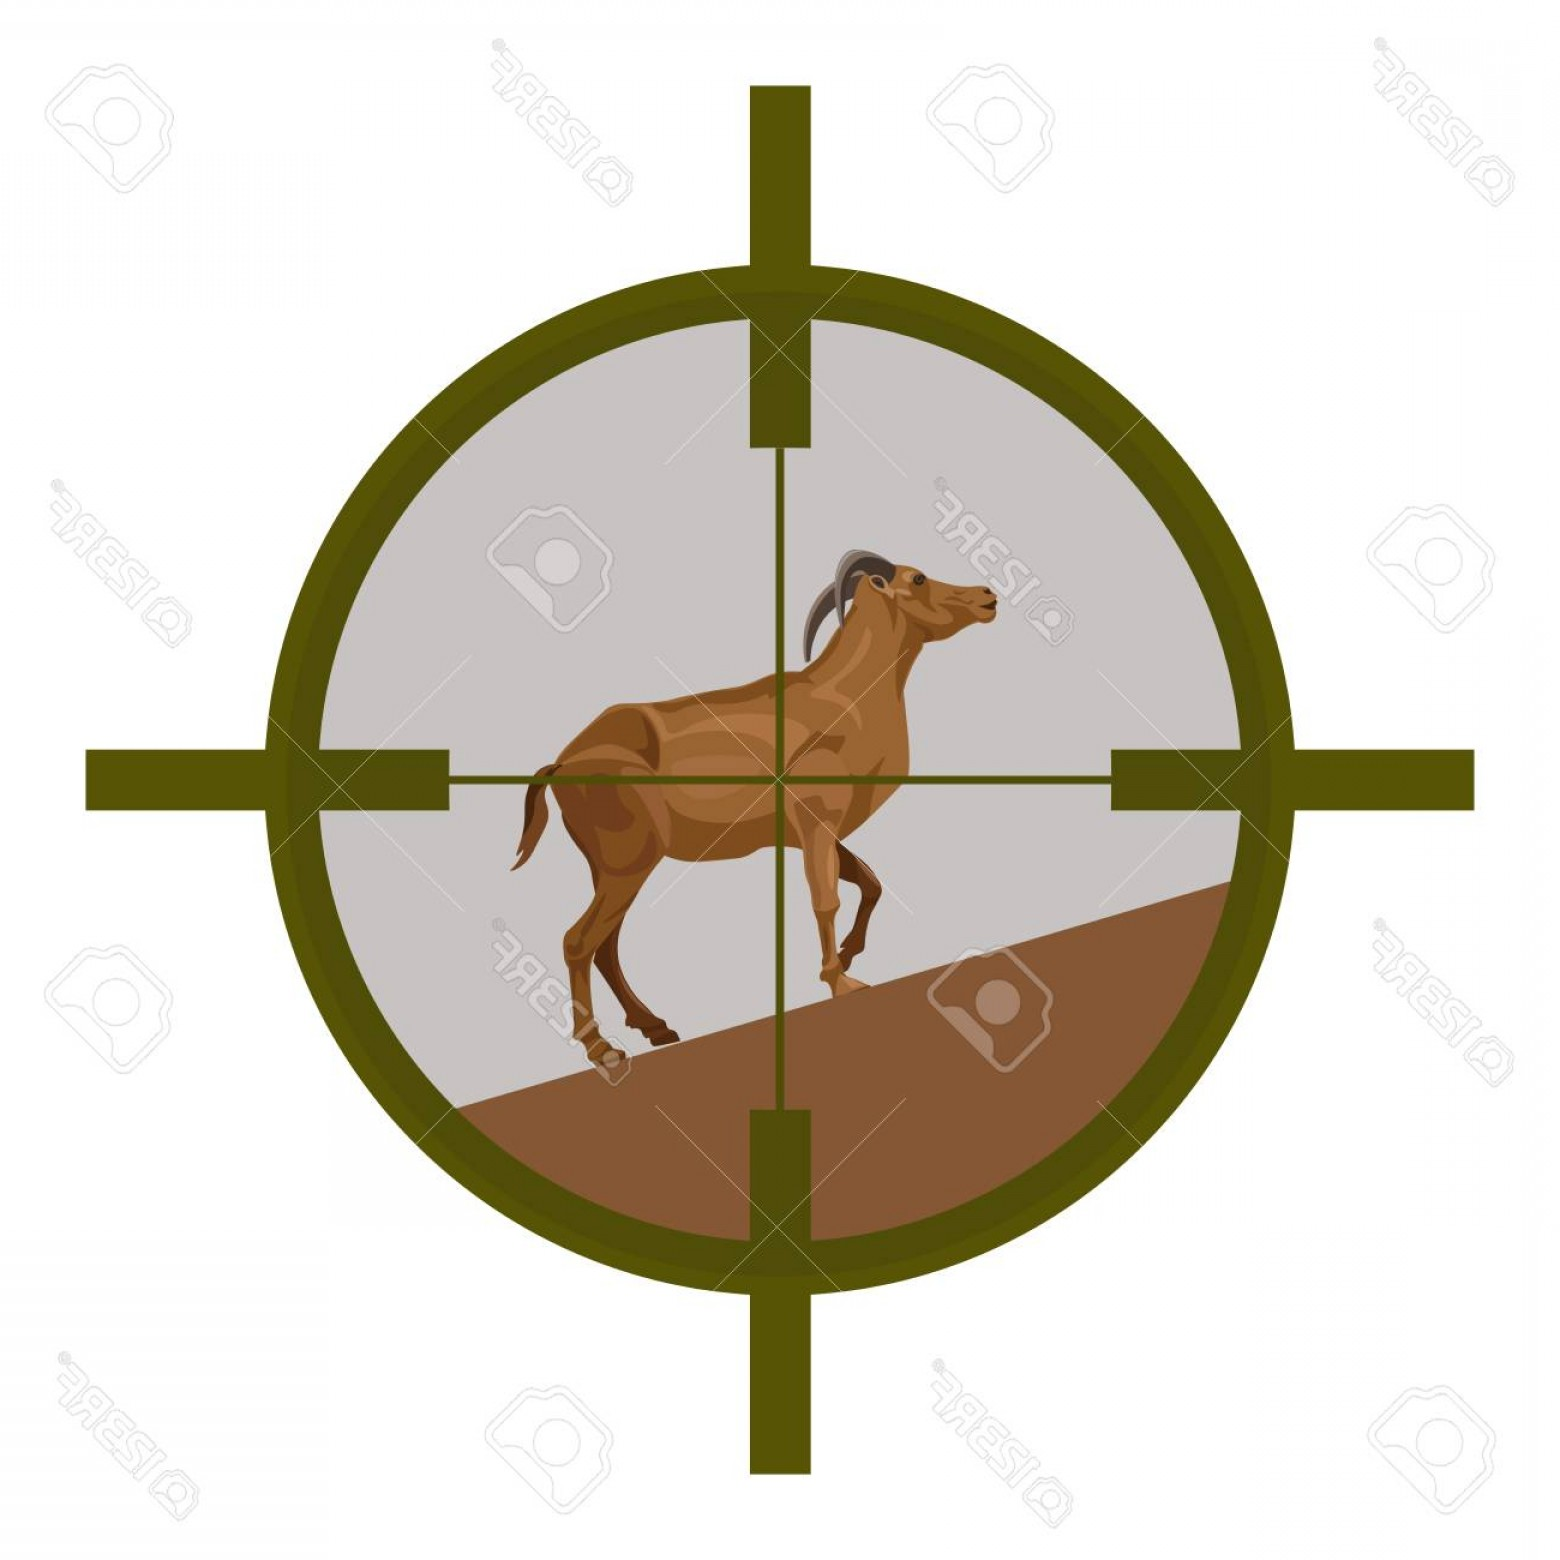 Hunting Rifle Vector Cross: Photostock Vector Wild Goat Seen In The Cross Hairs Of The Scope Of A Rifle Vector Illustration